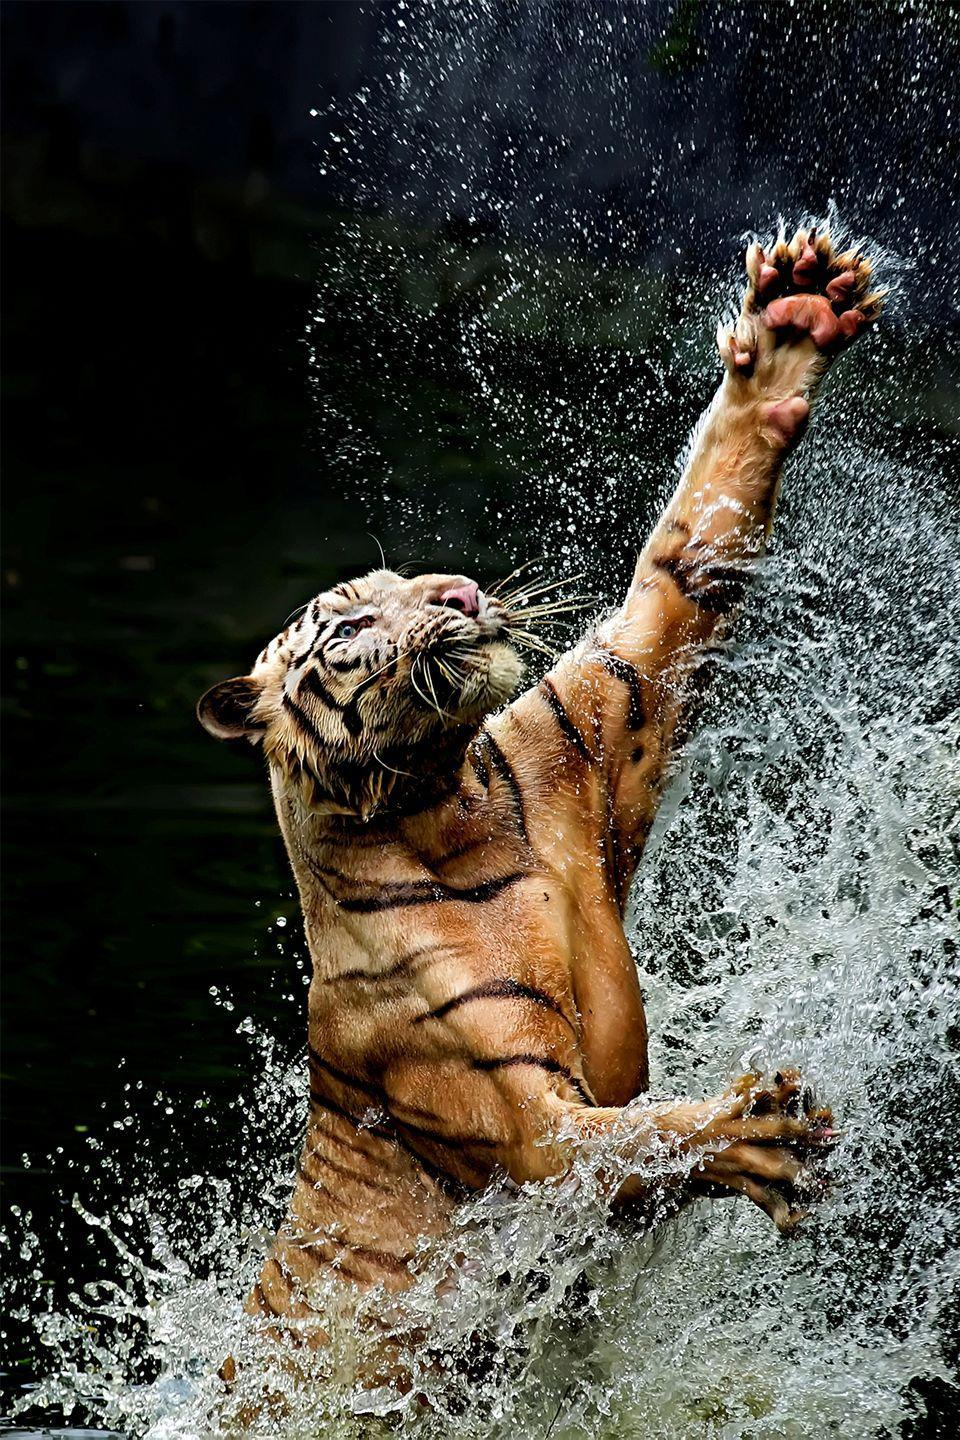 <p>Bengal tigers are native to India, and are known carnivores. A hungry tiger can eat as much as 60 pounds of meat in one meal, and if it can't finish, it usually buries it in the ground to save for a snack later.</p>